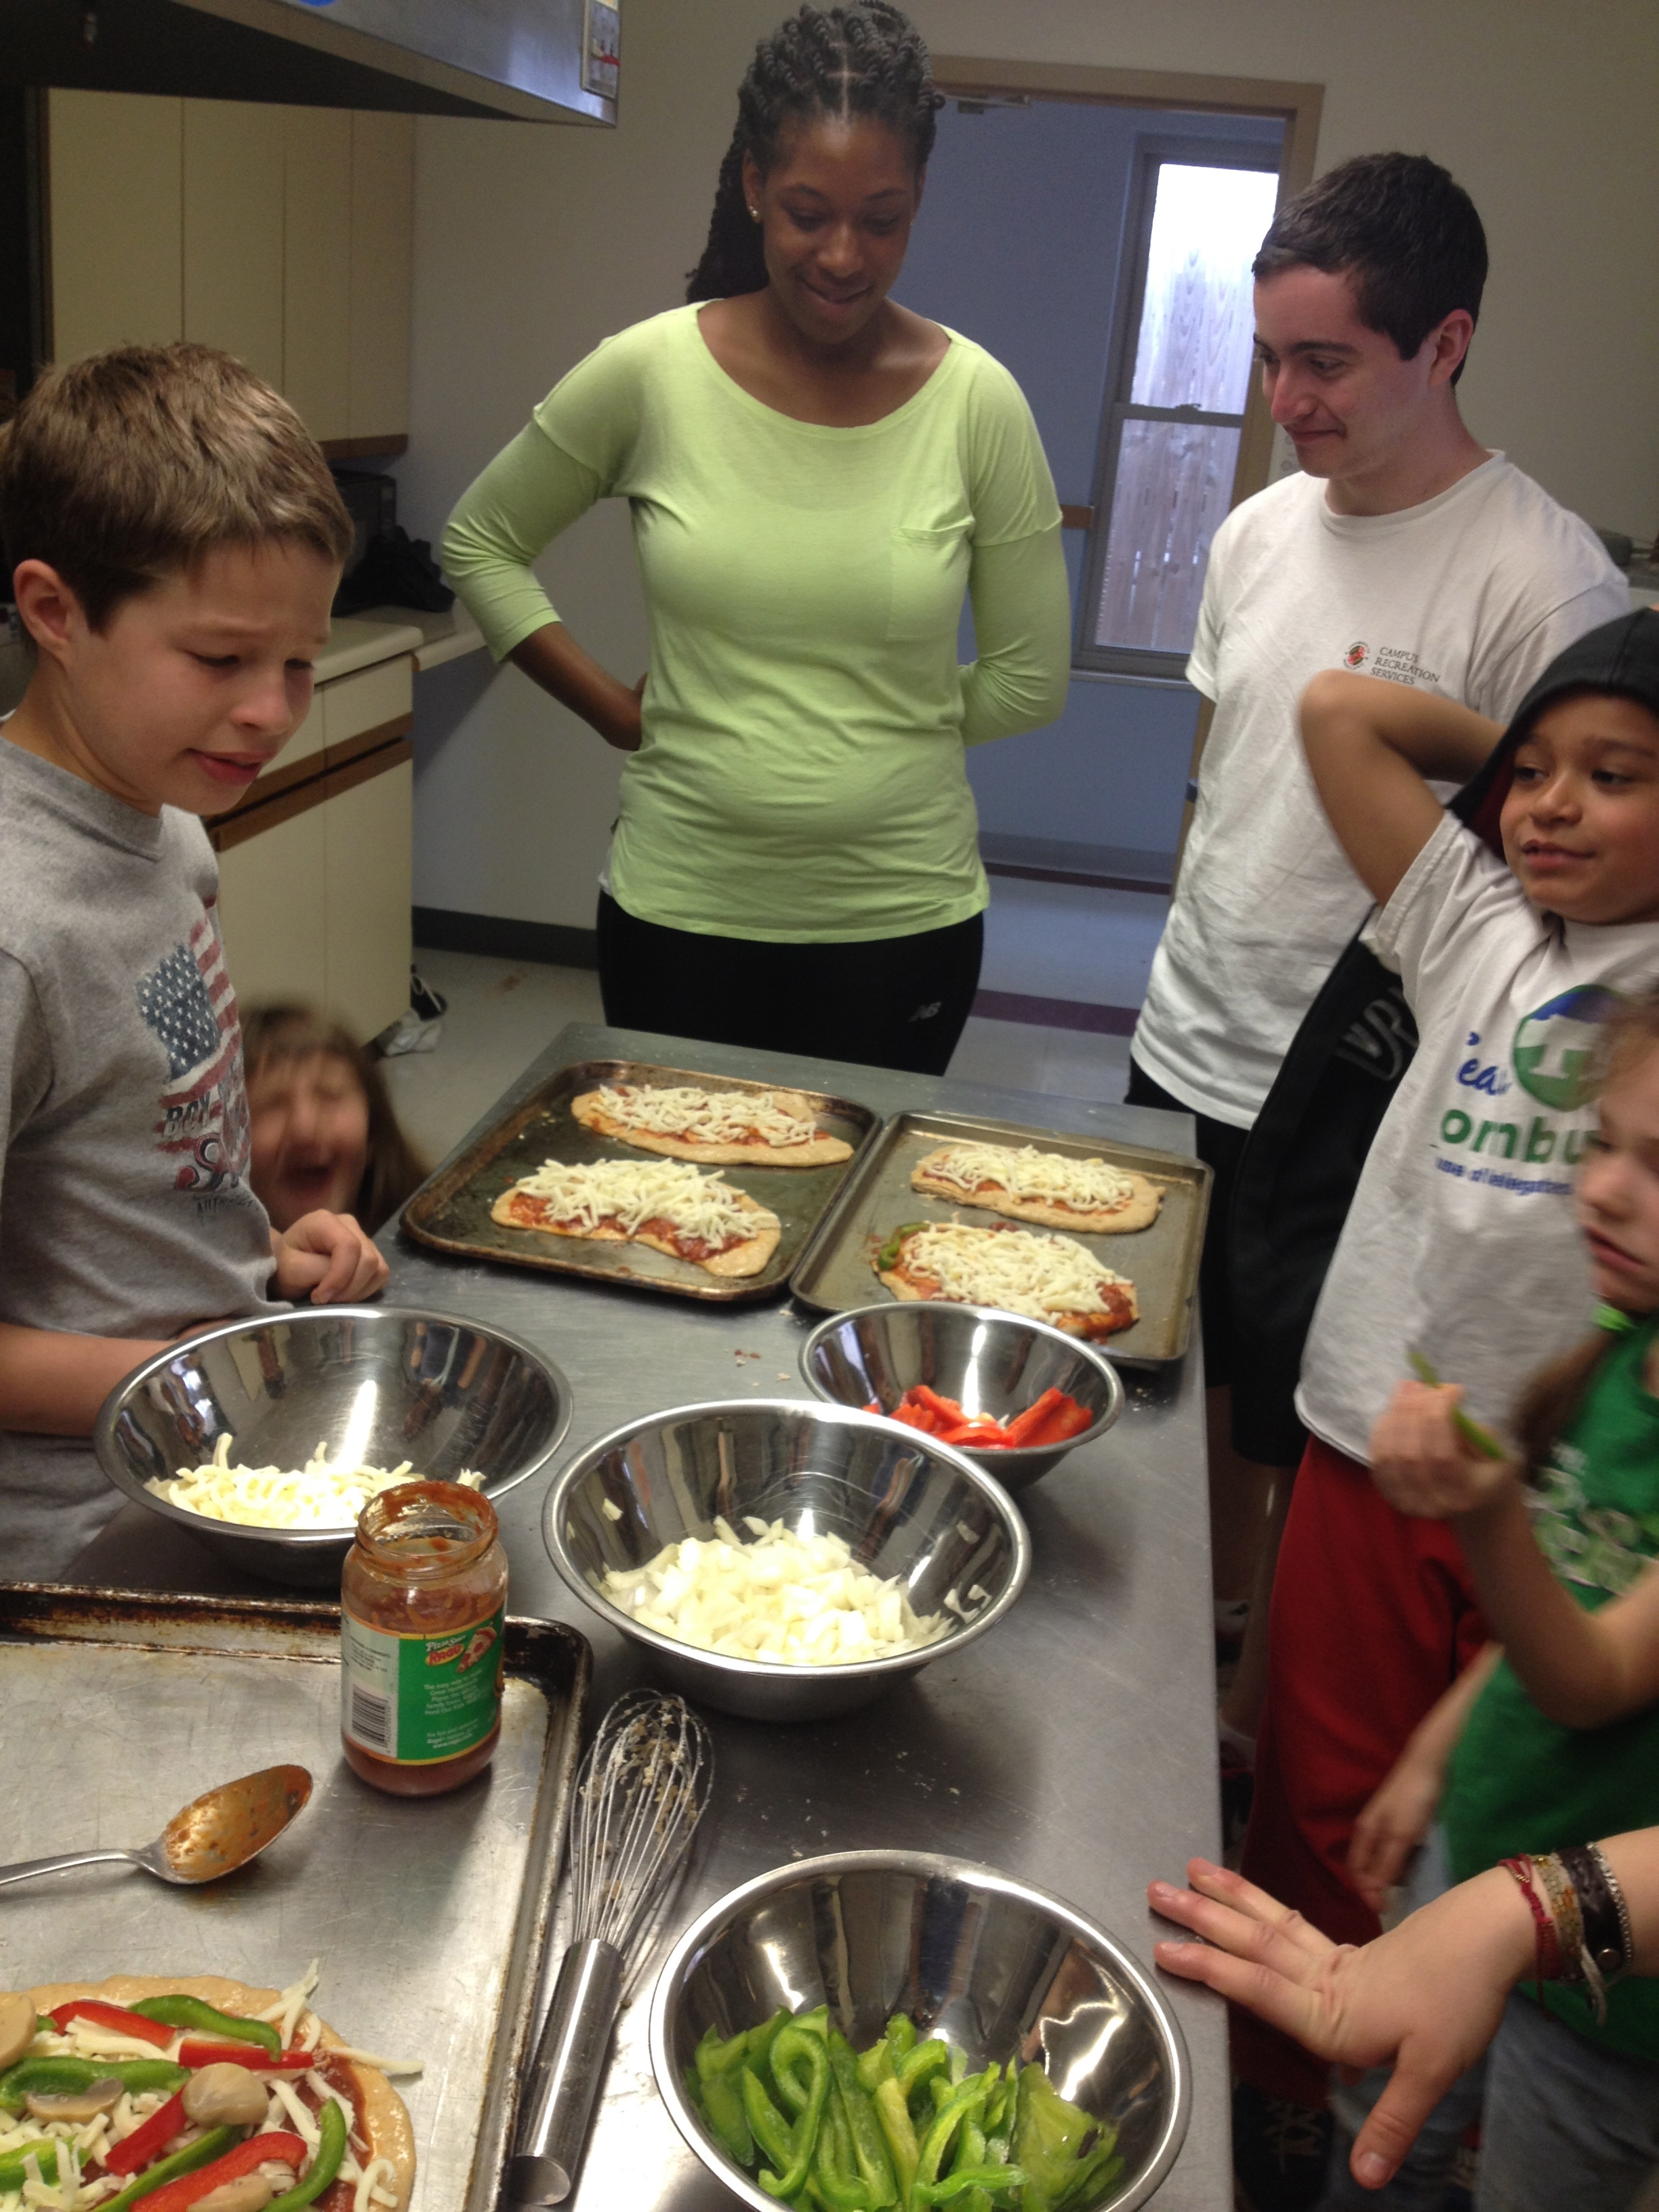 University of Maryland students make pizzas with young children at School Age Connections in Huntington, WV.